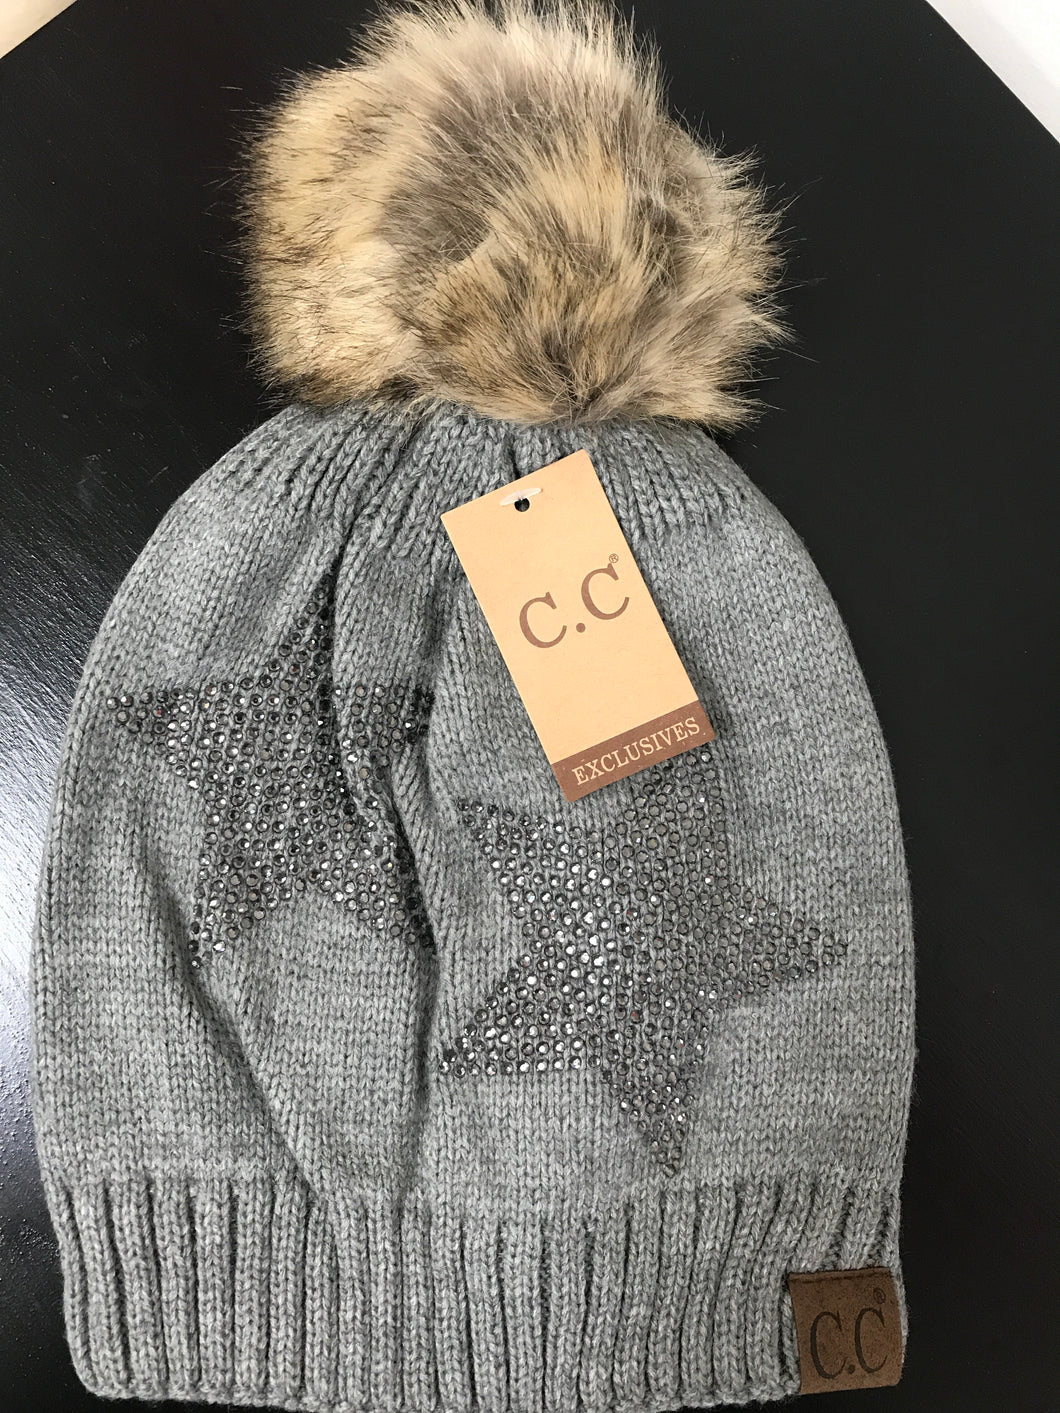 Rhinestone CC Fur Pom Star Hat- Lt Gray - Posh West Boutique